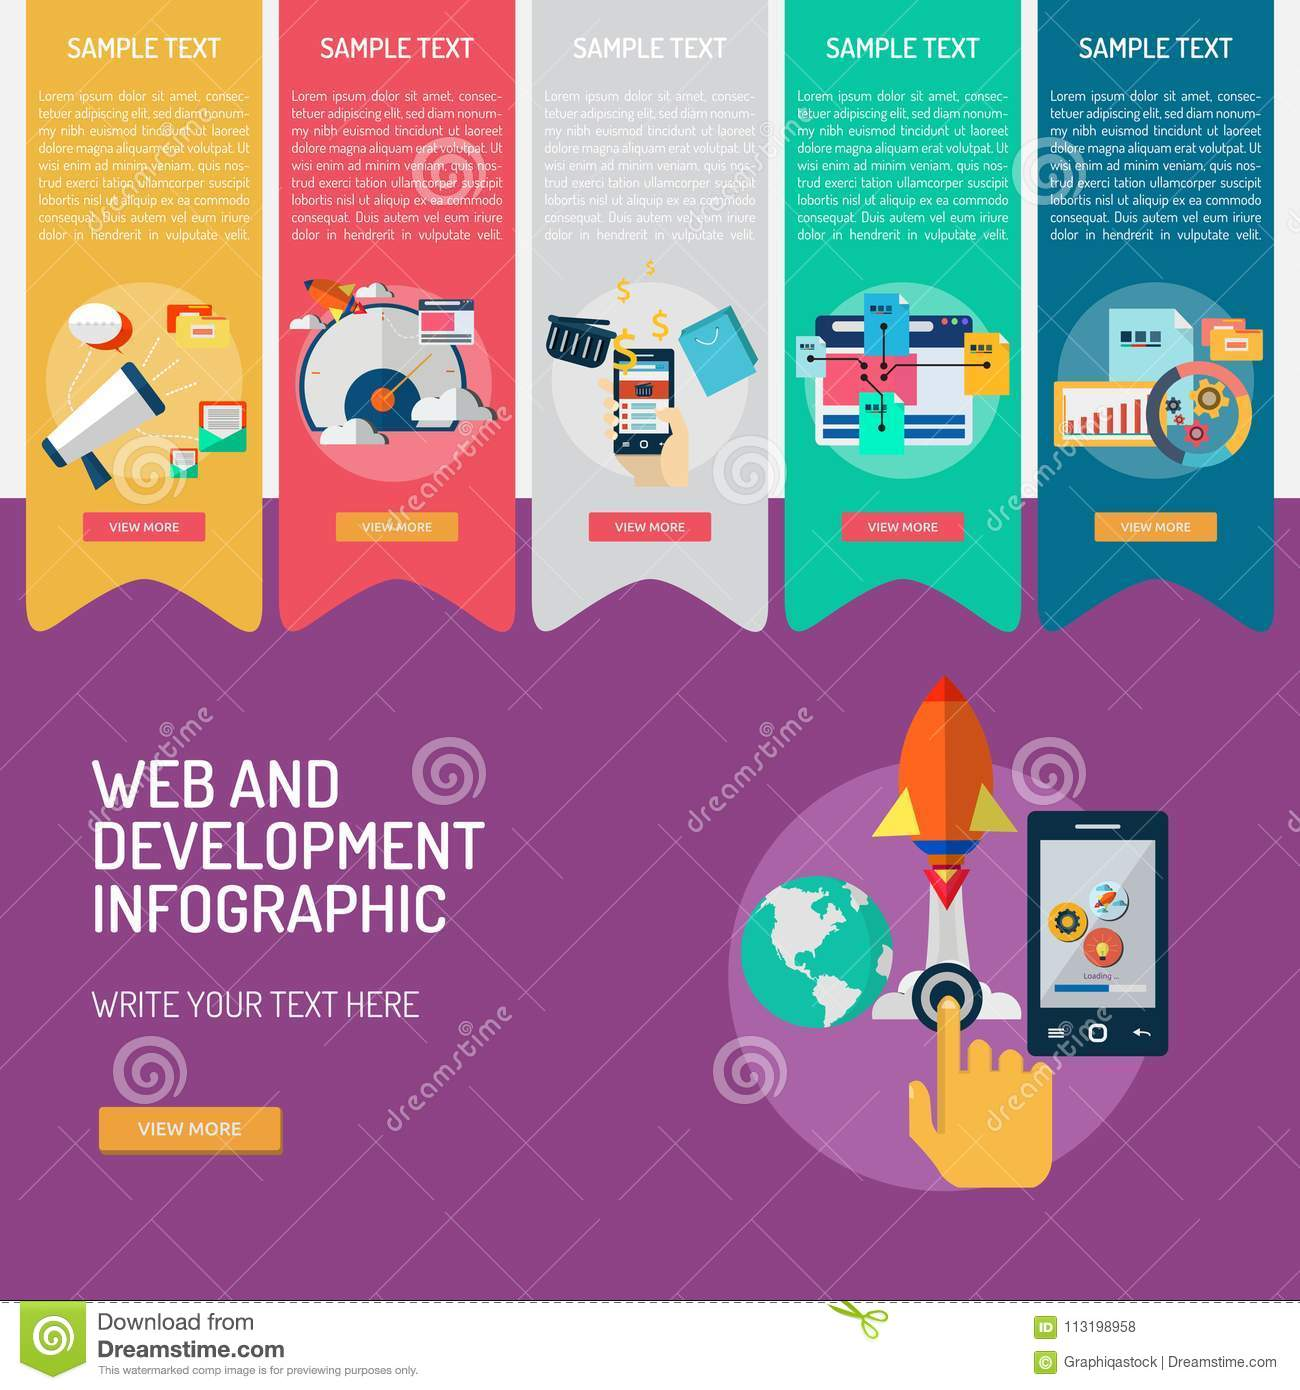 Web and Development Infographic Complex